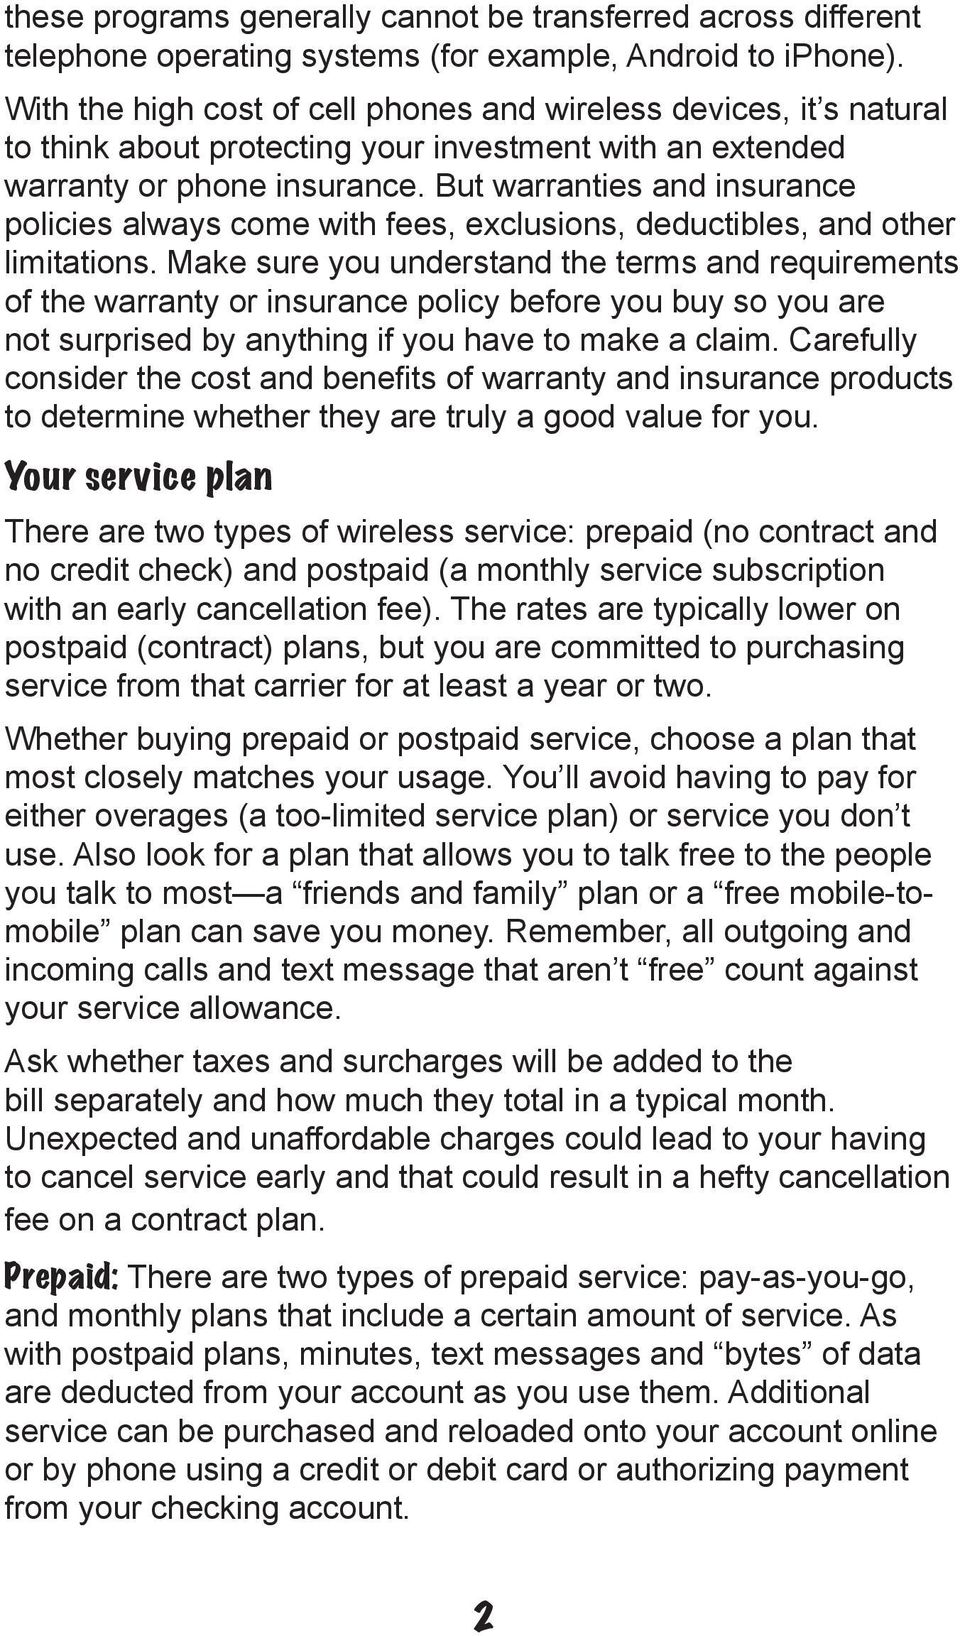 But warranties and insurance policies always come with fees, exclusions, deductibles, and other limitations.